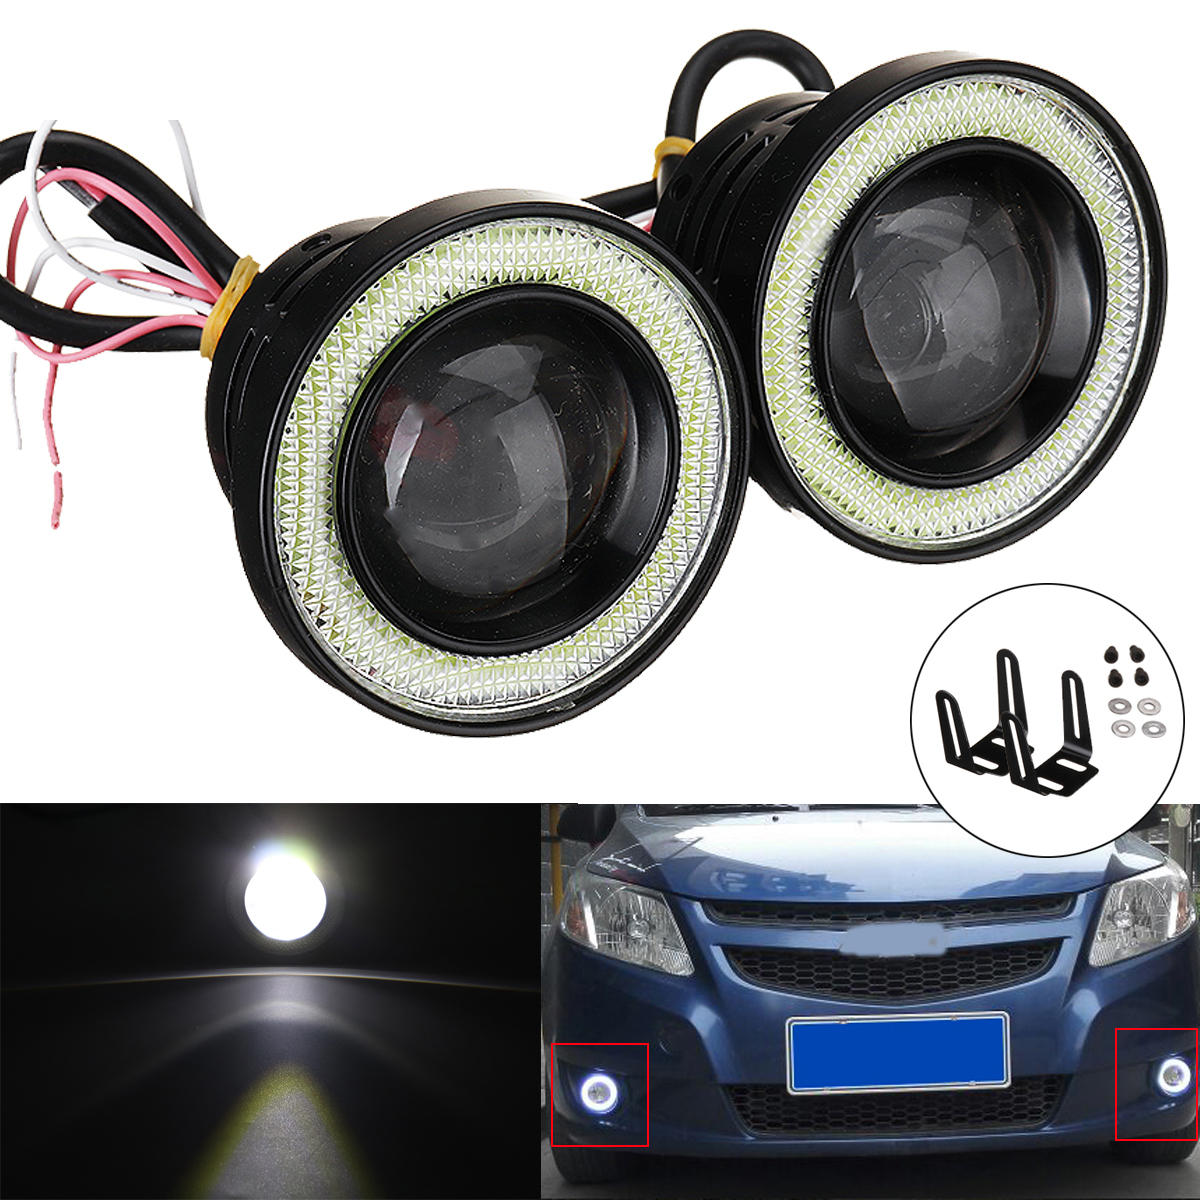 Fit For Ice Blue Color Led Style H11 H8 7.5w Auto Accessories Fog Driving Light Lamp Projector Lens Bulbs Parts Kit Automobiles & Motorcycles